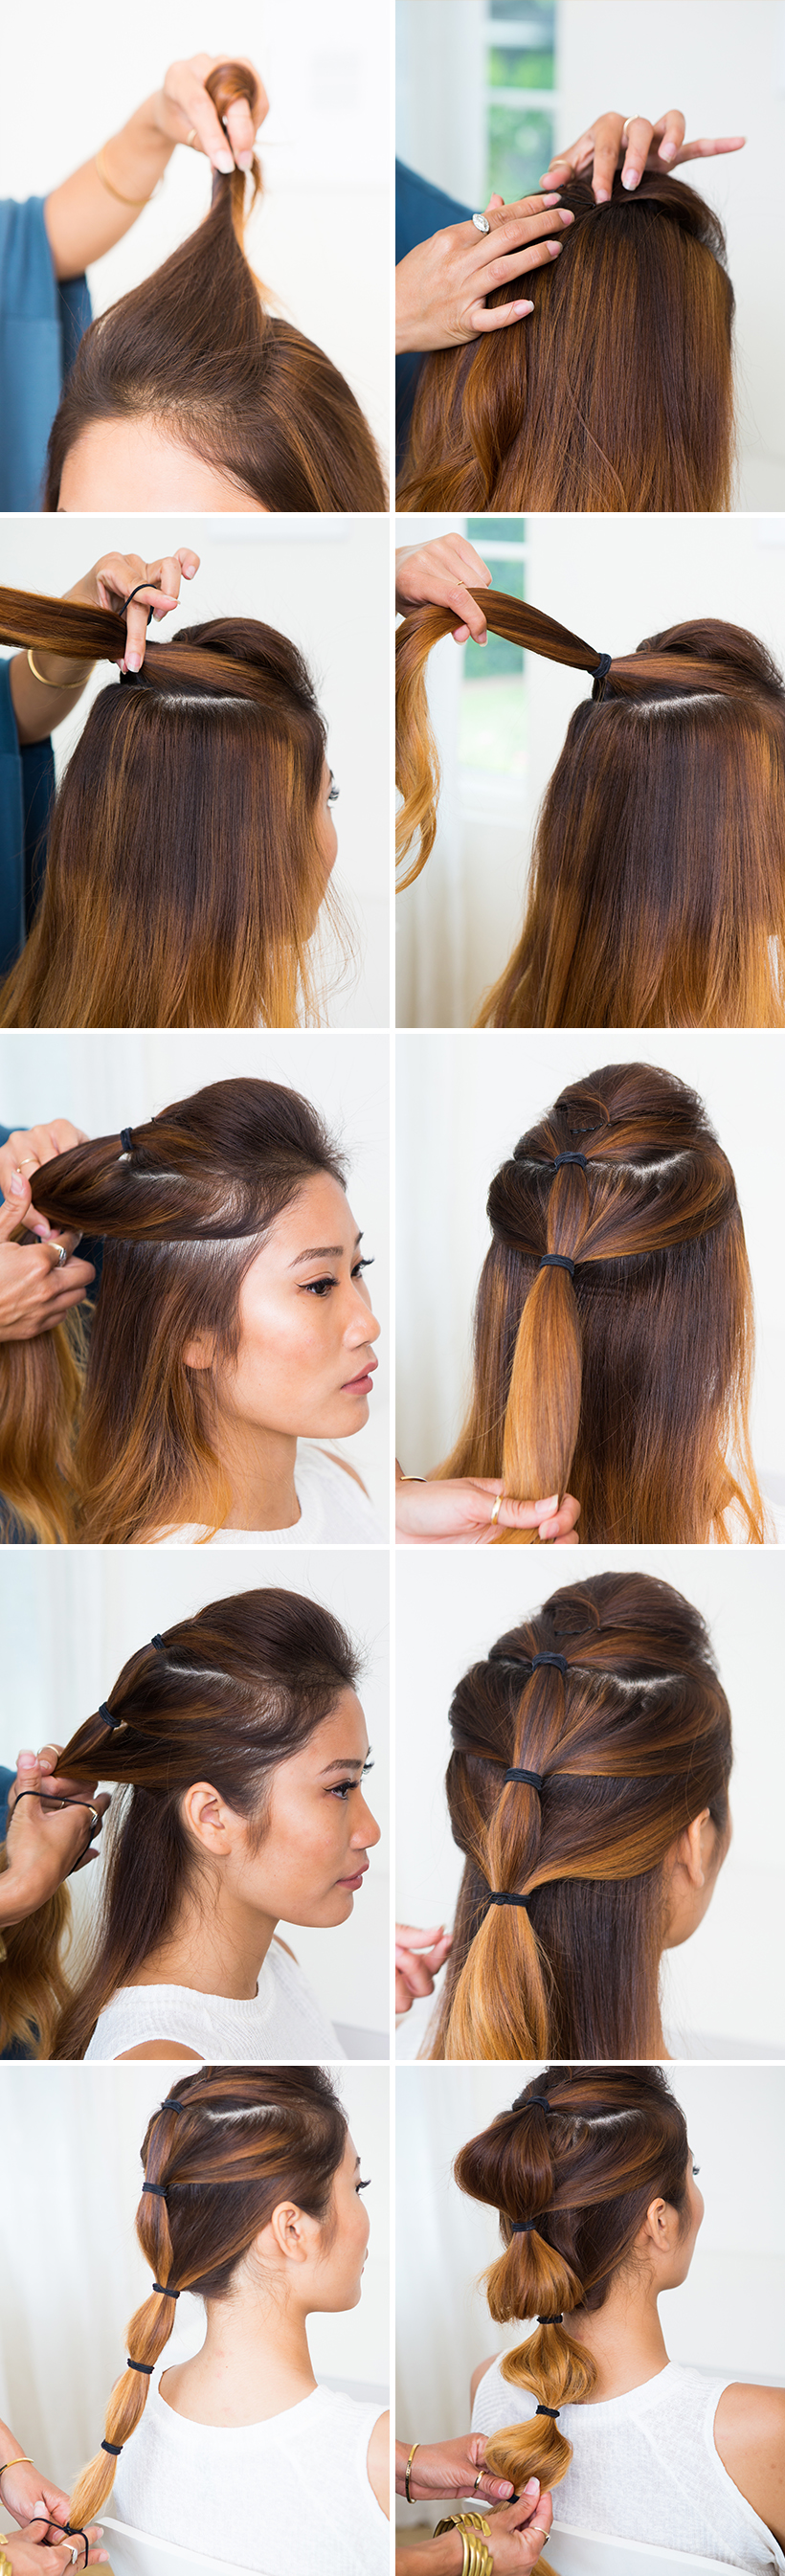 So fun! Love this hairstyle and want to try it